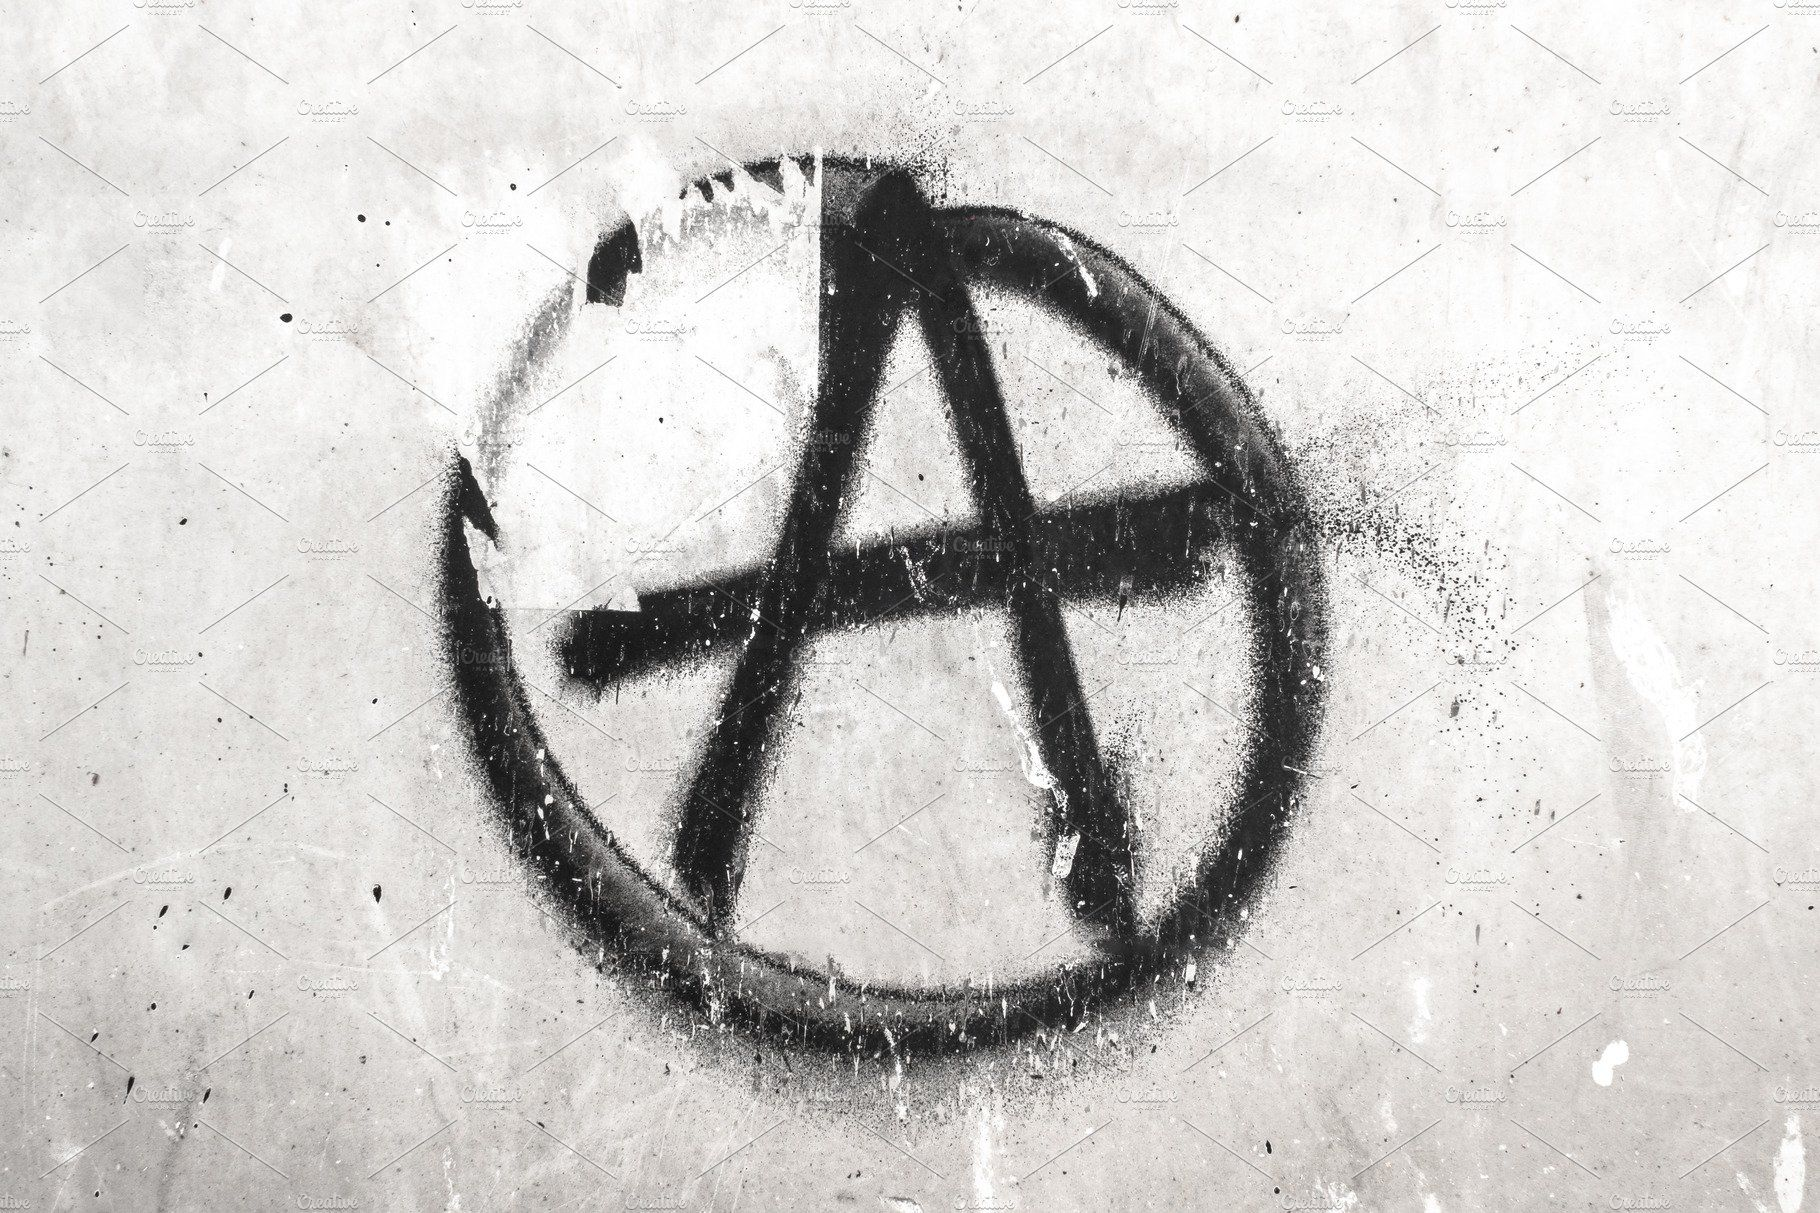 Symbol Of Anarchy Painted On A Wall Anarchy Symbol Anarchy Spray Paint Art